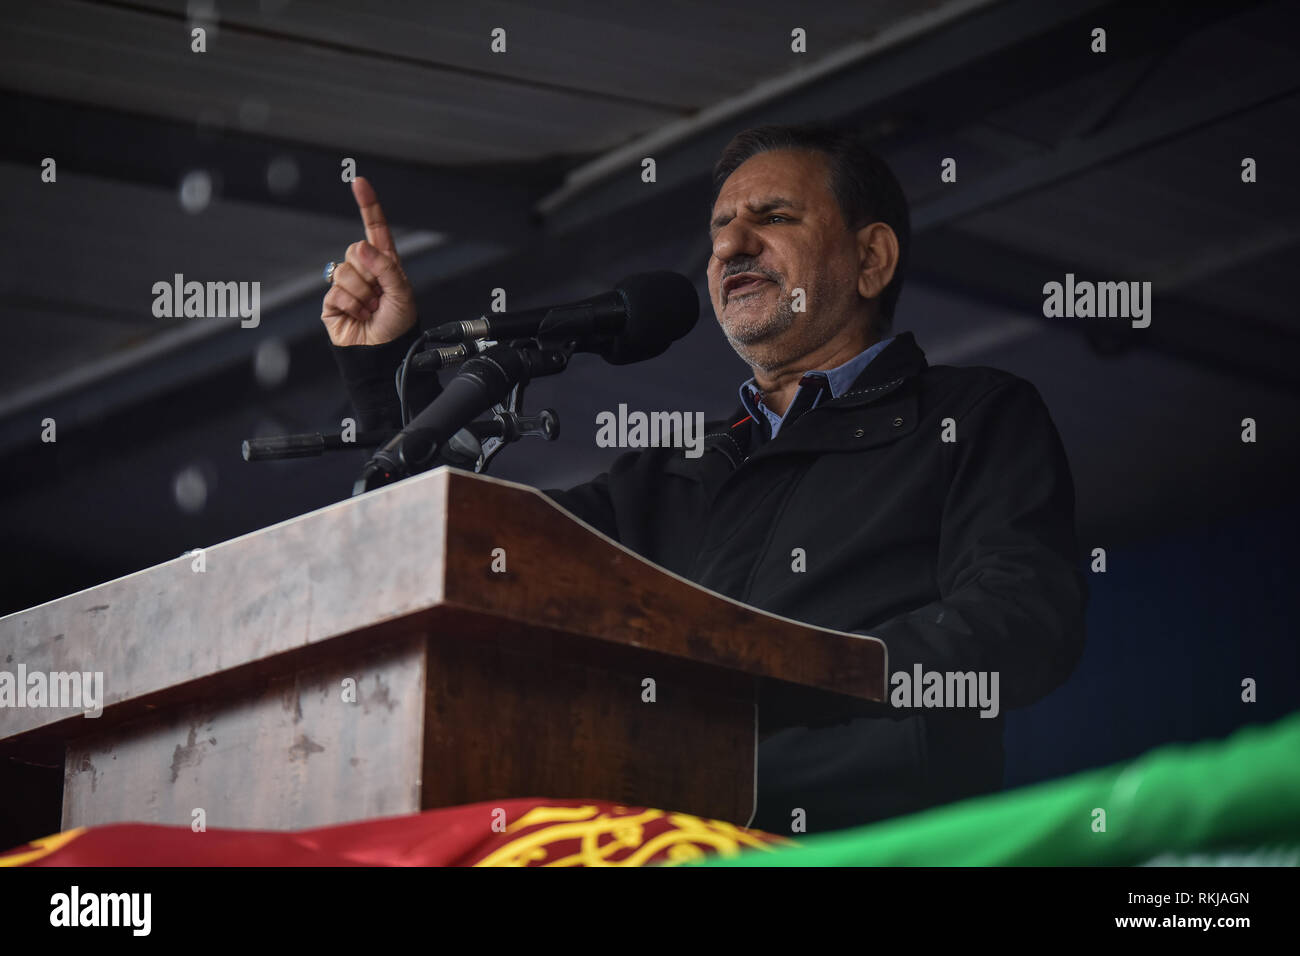 Iranians attend a ceremony celebrating the 40th anniversary of their Islamic Revolution, Shiraz city in Fars province, Iran, Monday. Eshaq Jahangiri Kouhshahi is an Iranian politician and first vice president of Hassan Rouhani's government speaks during a ceremony celebrating the 40th anniversary ofthe Islamic revolution at Shiraz city of Iran. Feb. 11, 2019. Hundreds of thousands of people poured out onto the streets of Shiraz and other cities, towns and provinces across Iran, marking the date 40 years ago that is considered as victory day in the country's 1979 Islamic revolution. - Stock Image